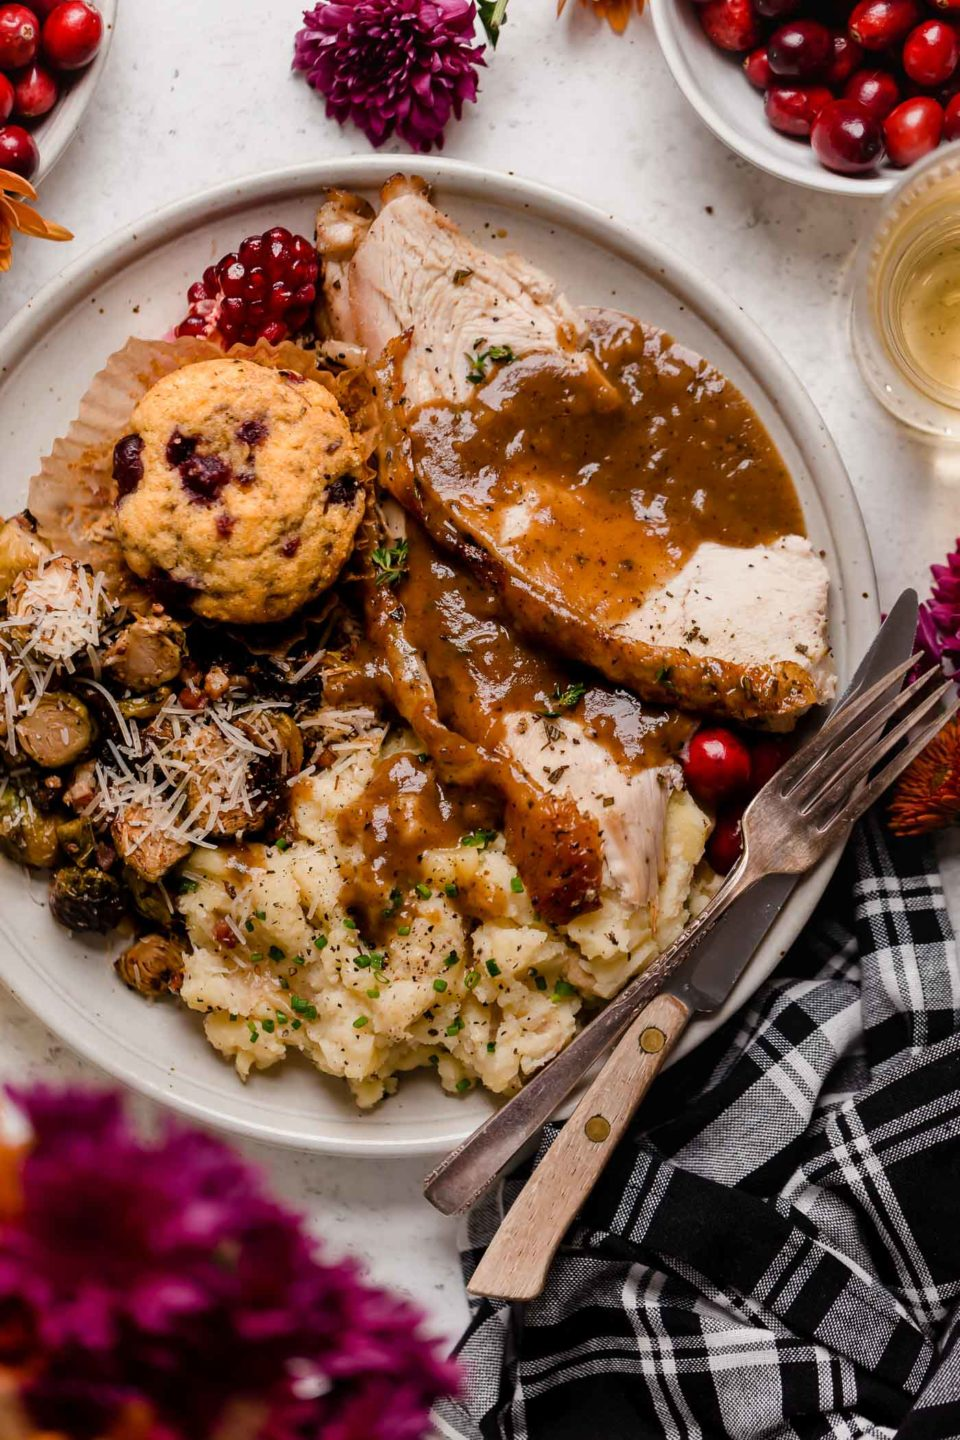 A white plate full of Thanksgiving foods including Maple Mustard Roasted Brussels Sprouts topped with parmesan cheese, a single Swirled Cranberry Cornbread Muffin, two large slices of Maple Glazed Spatchcock Turkey and Roasted Garlic Mashed Potatoes topped with gravy. The plate has a fork & a knife resting on it and is surrounded by purple flowers a plaid dinner napkin and bowls of fresh cranberries.